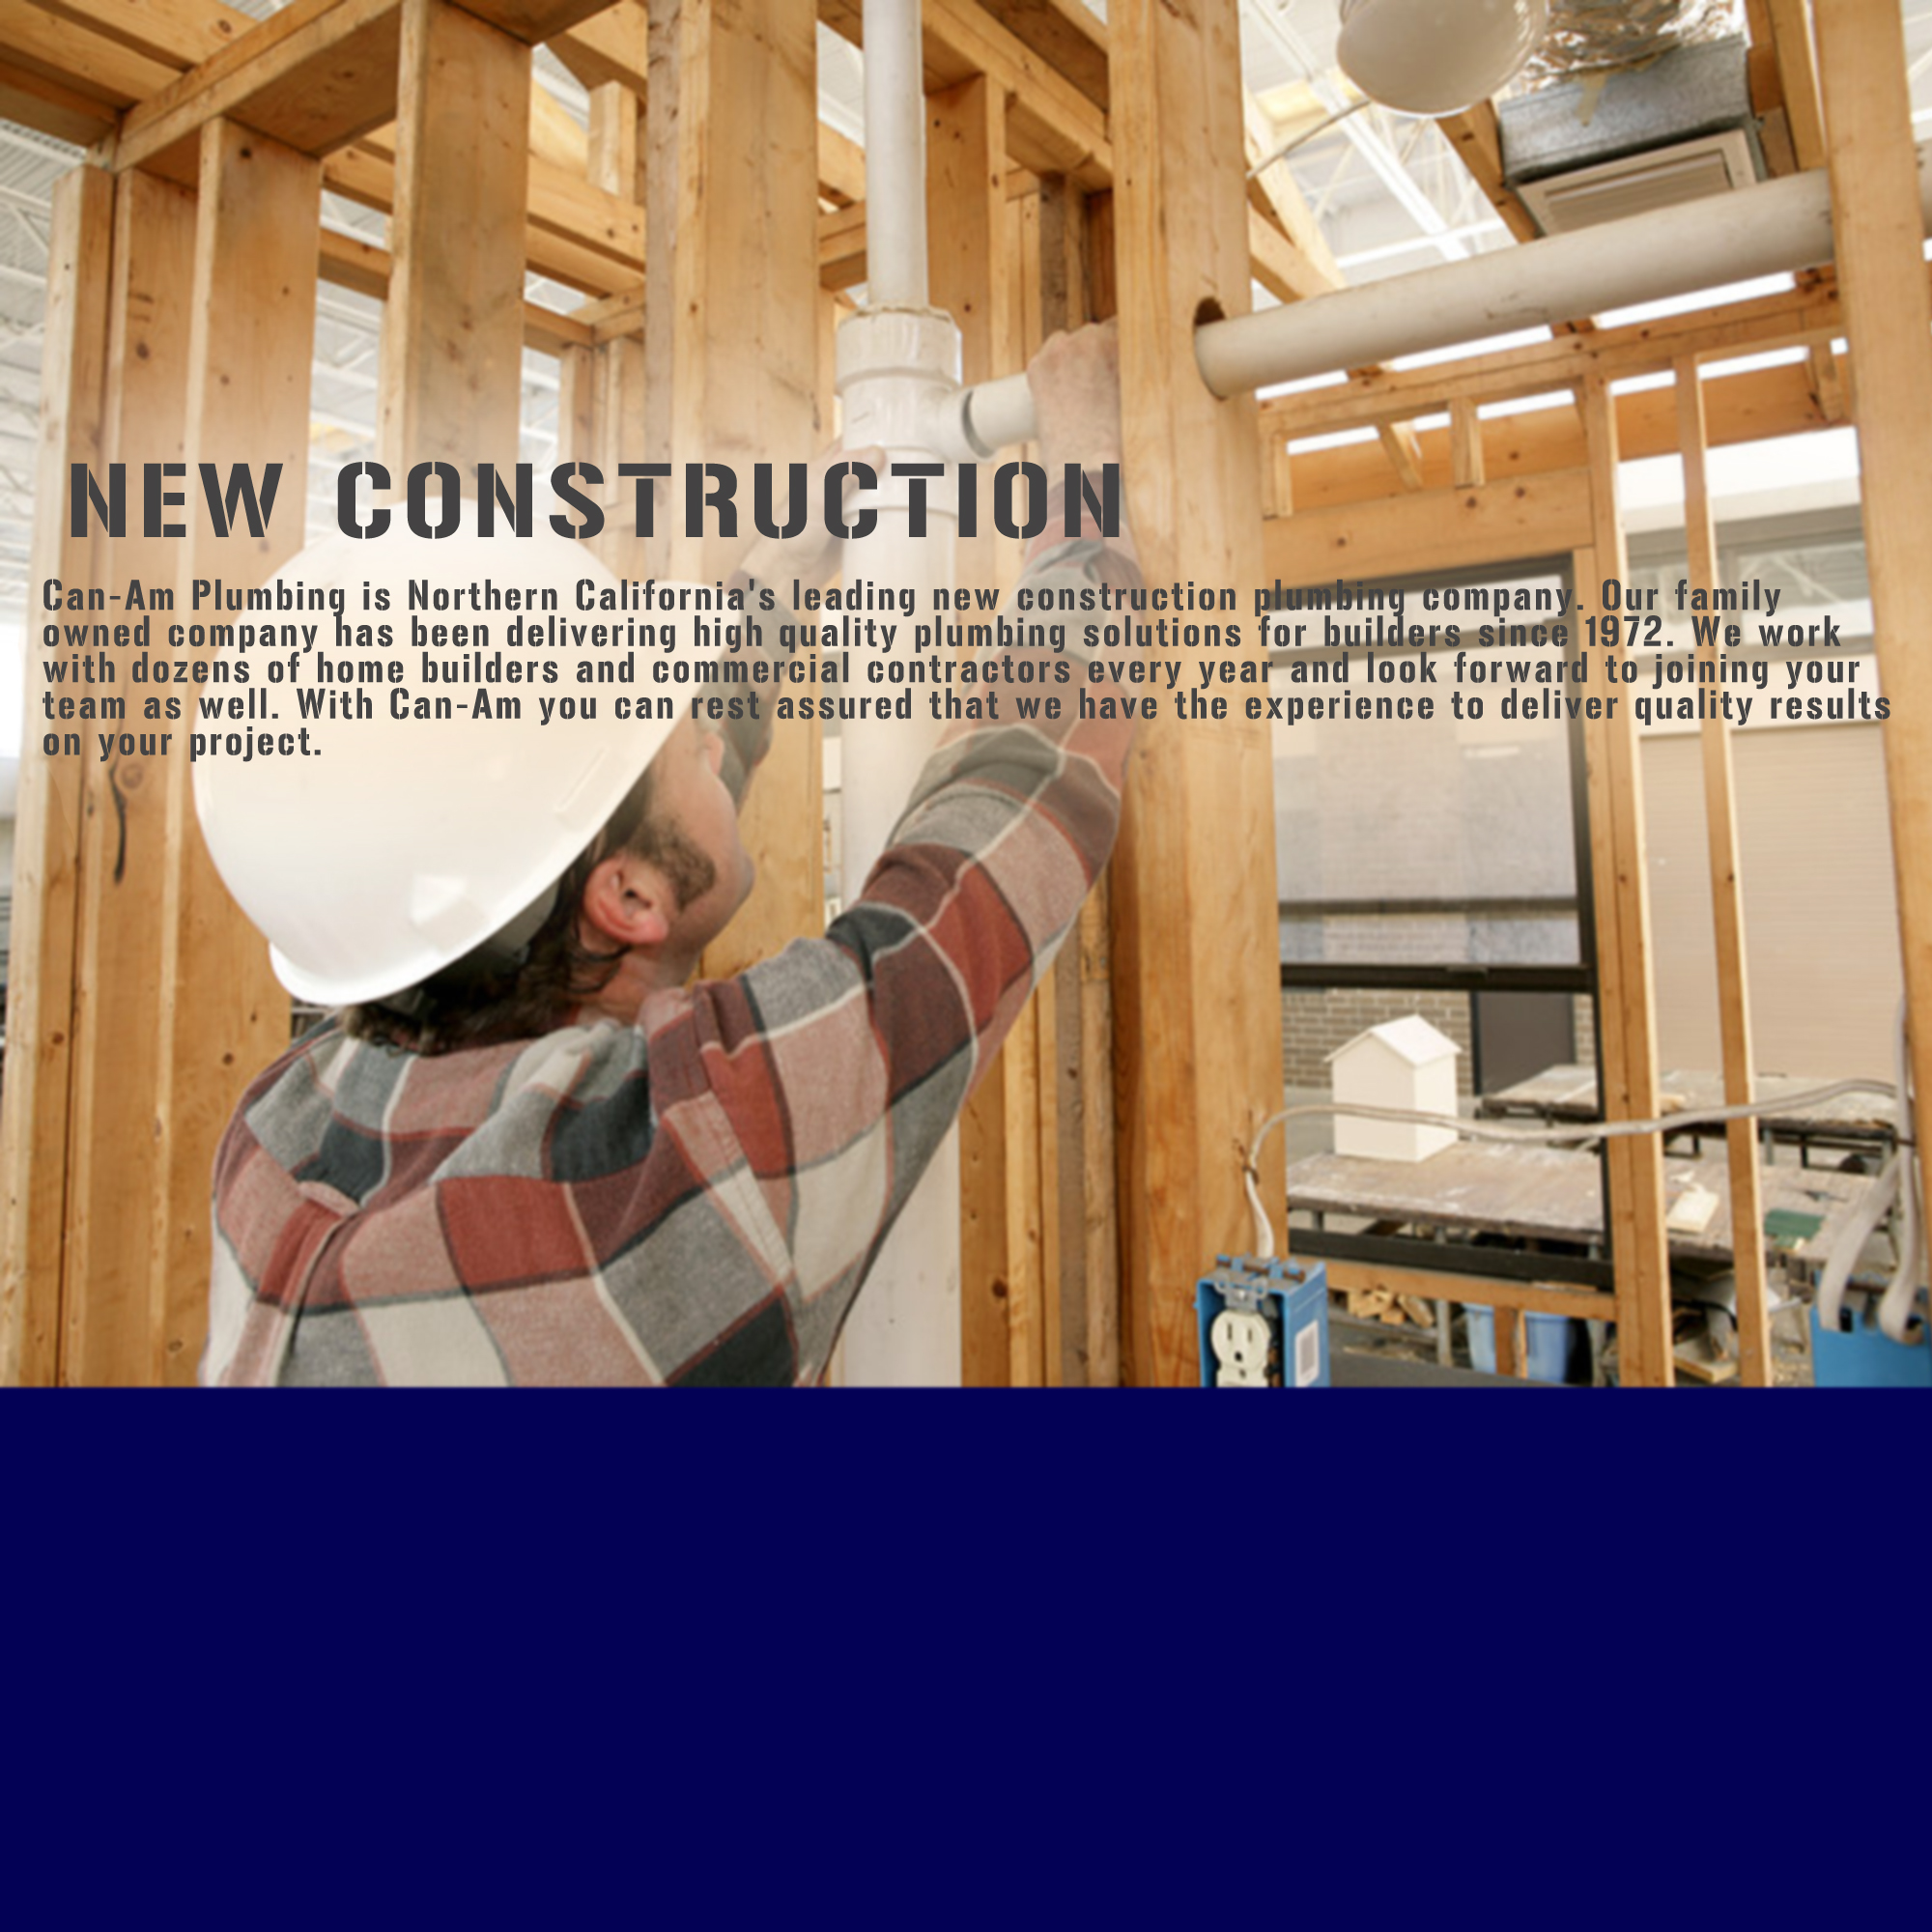 Newconstructionpage can am plumbing for New construction plumbing